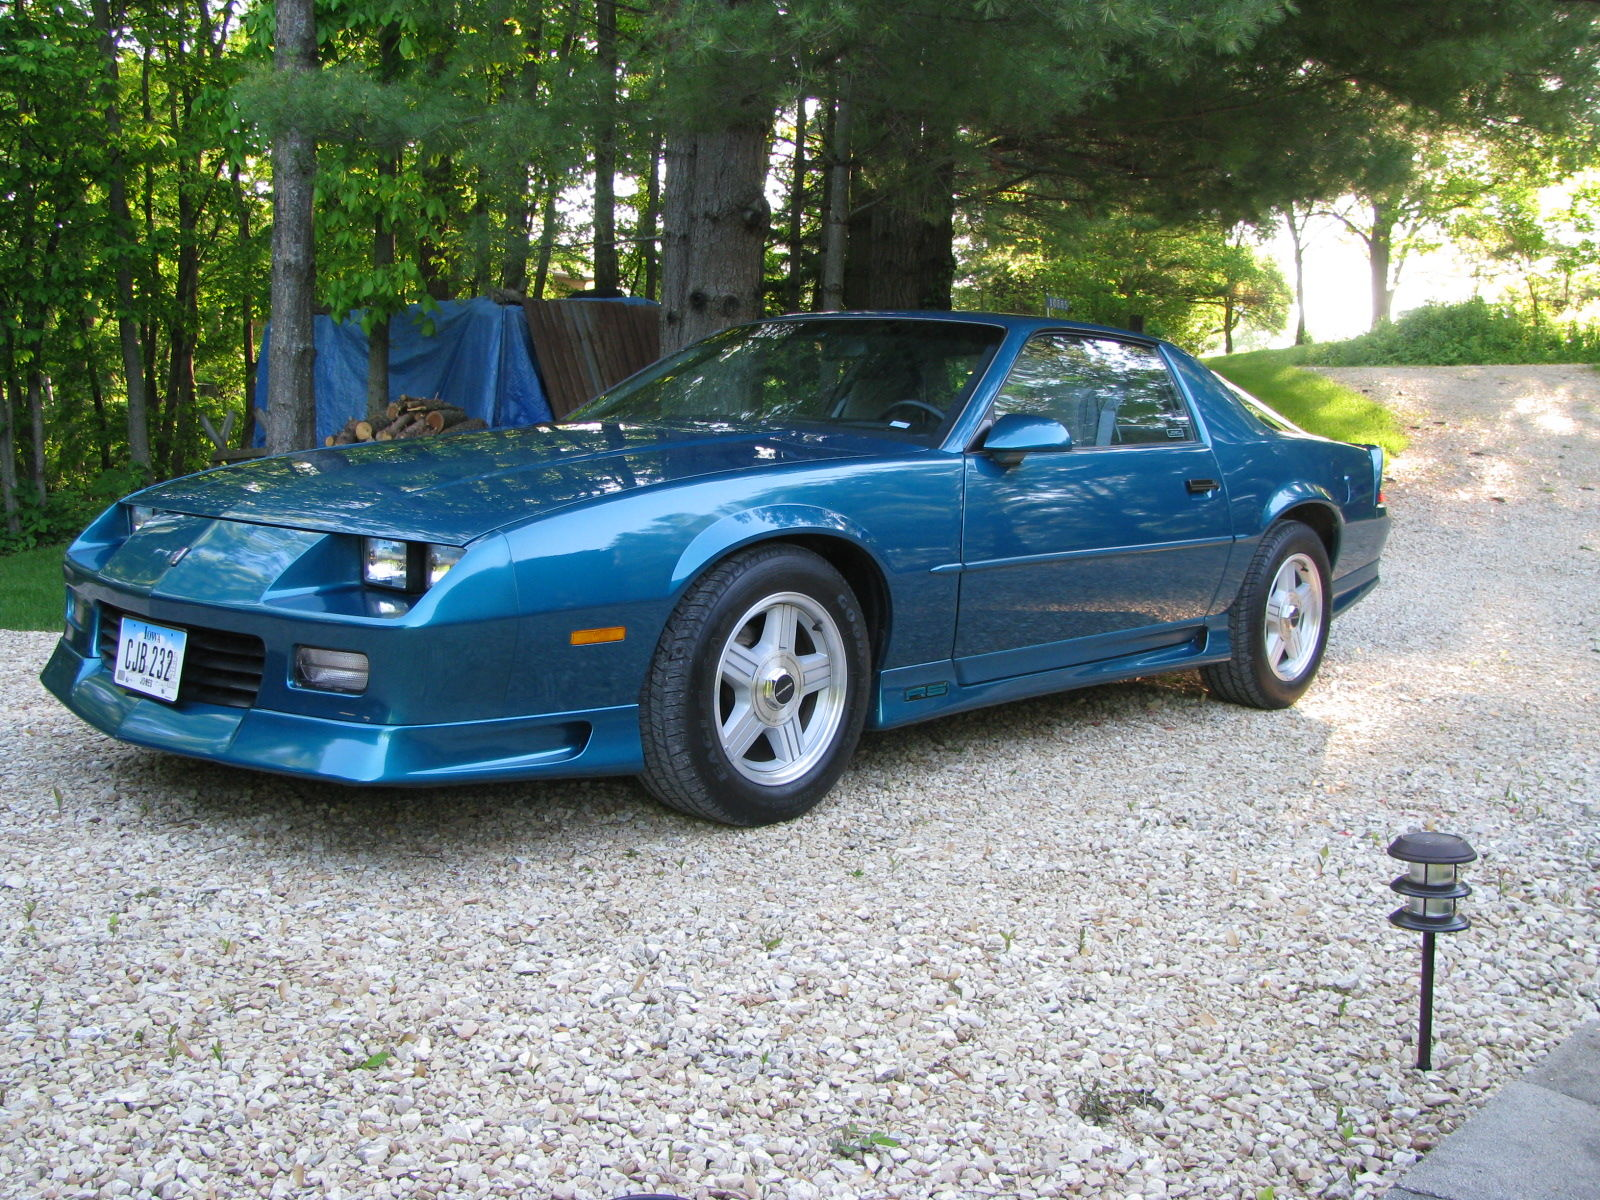 Iowa For Sale 1991 Camaro Rs Third Generation F Body